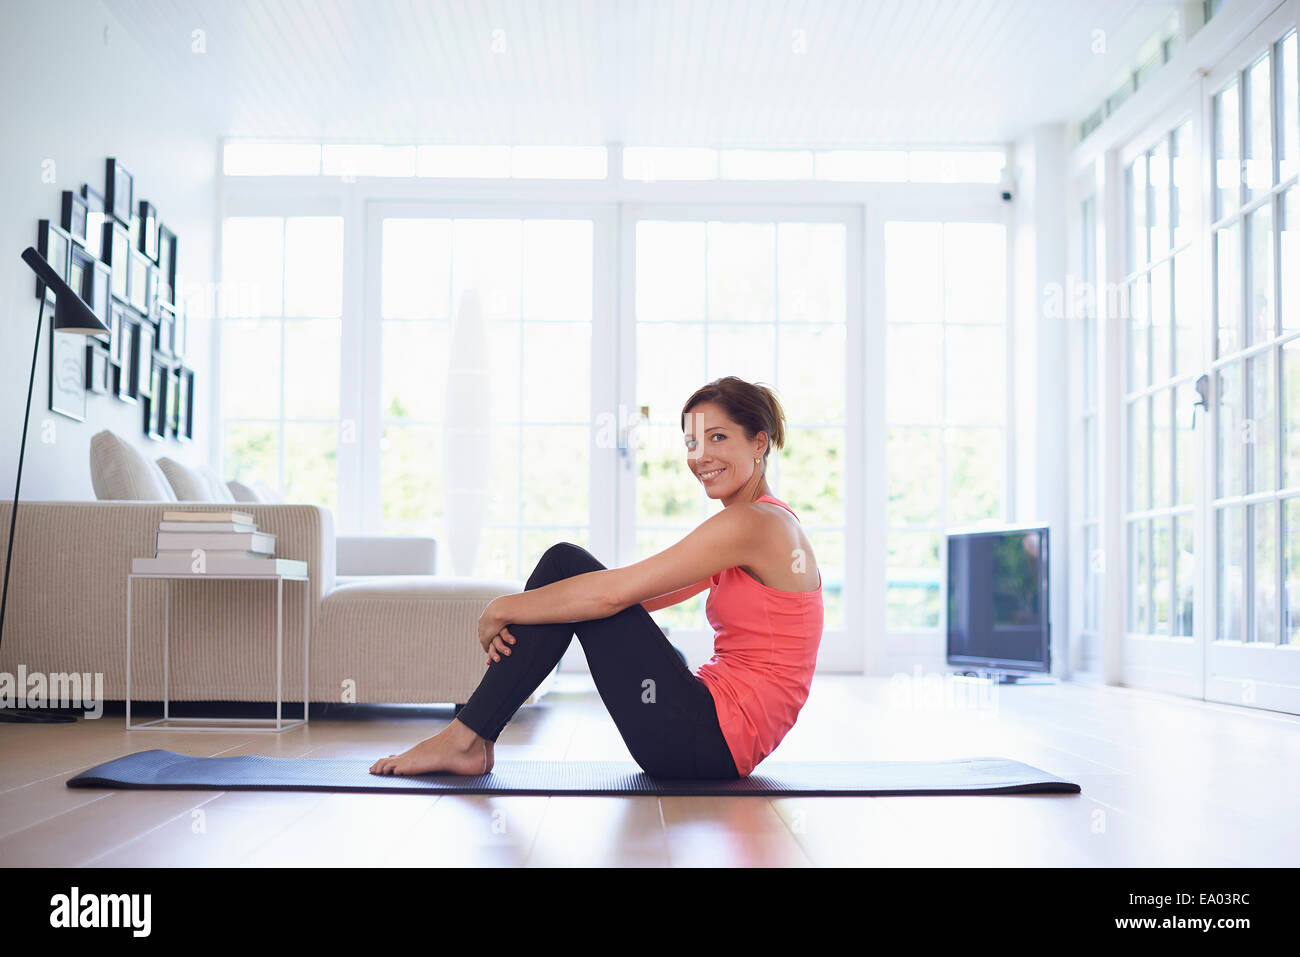 Portrait Of Mid Adult Woman On Yoga Mat In Living Room